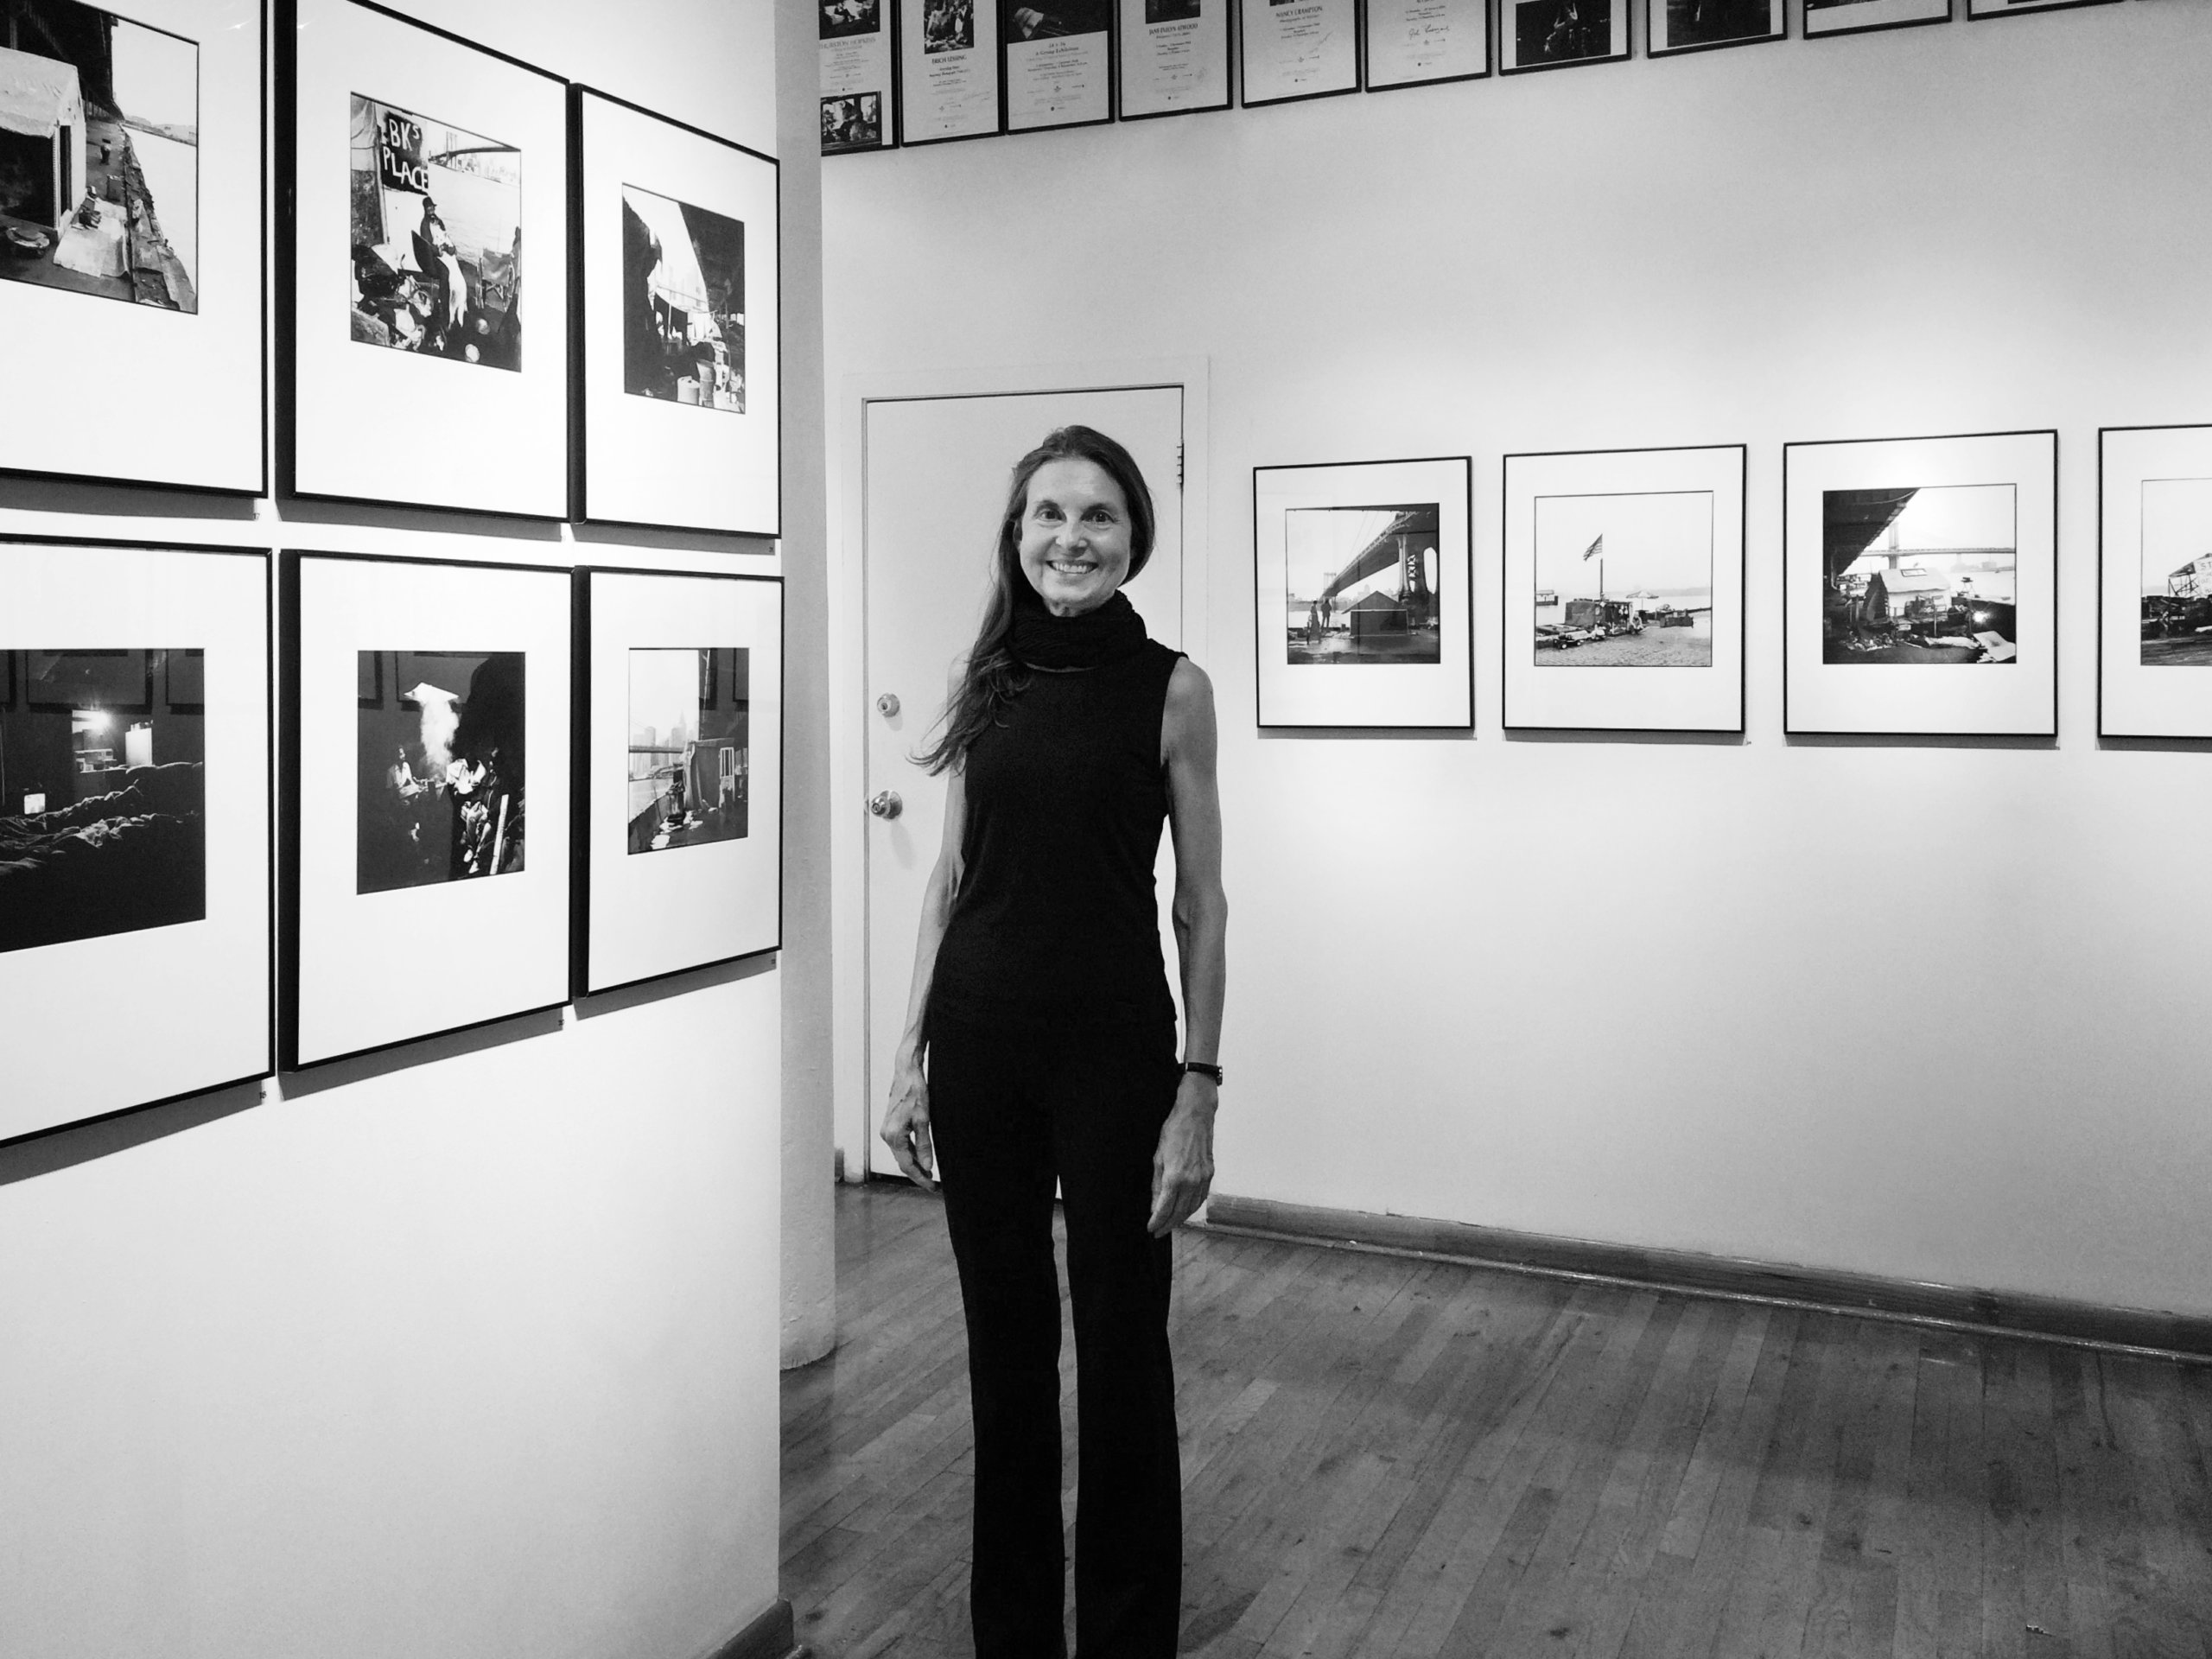 A woman, Margaret Morton, in black and white in a photo gallery